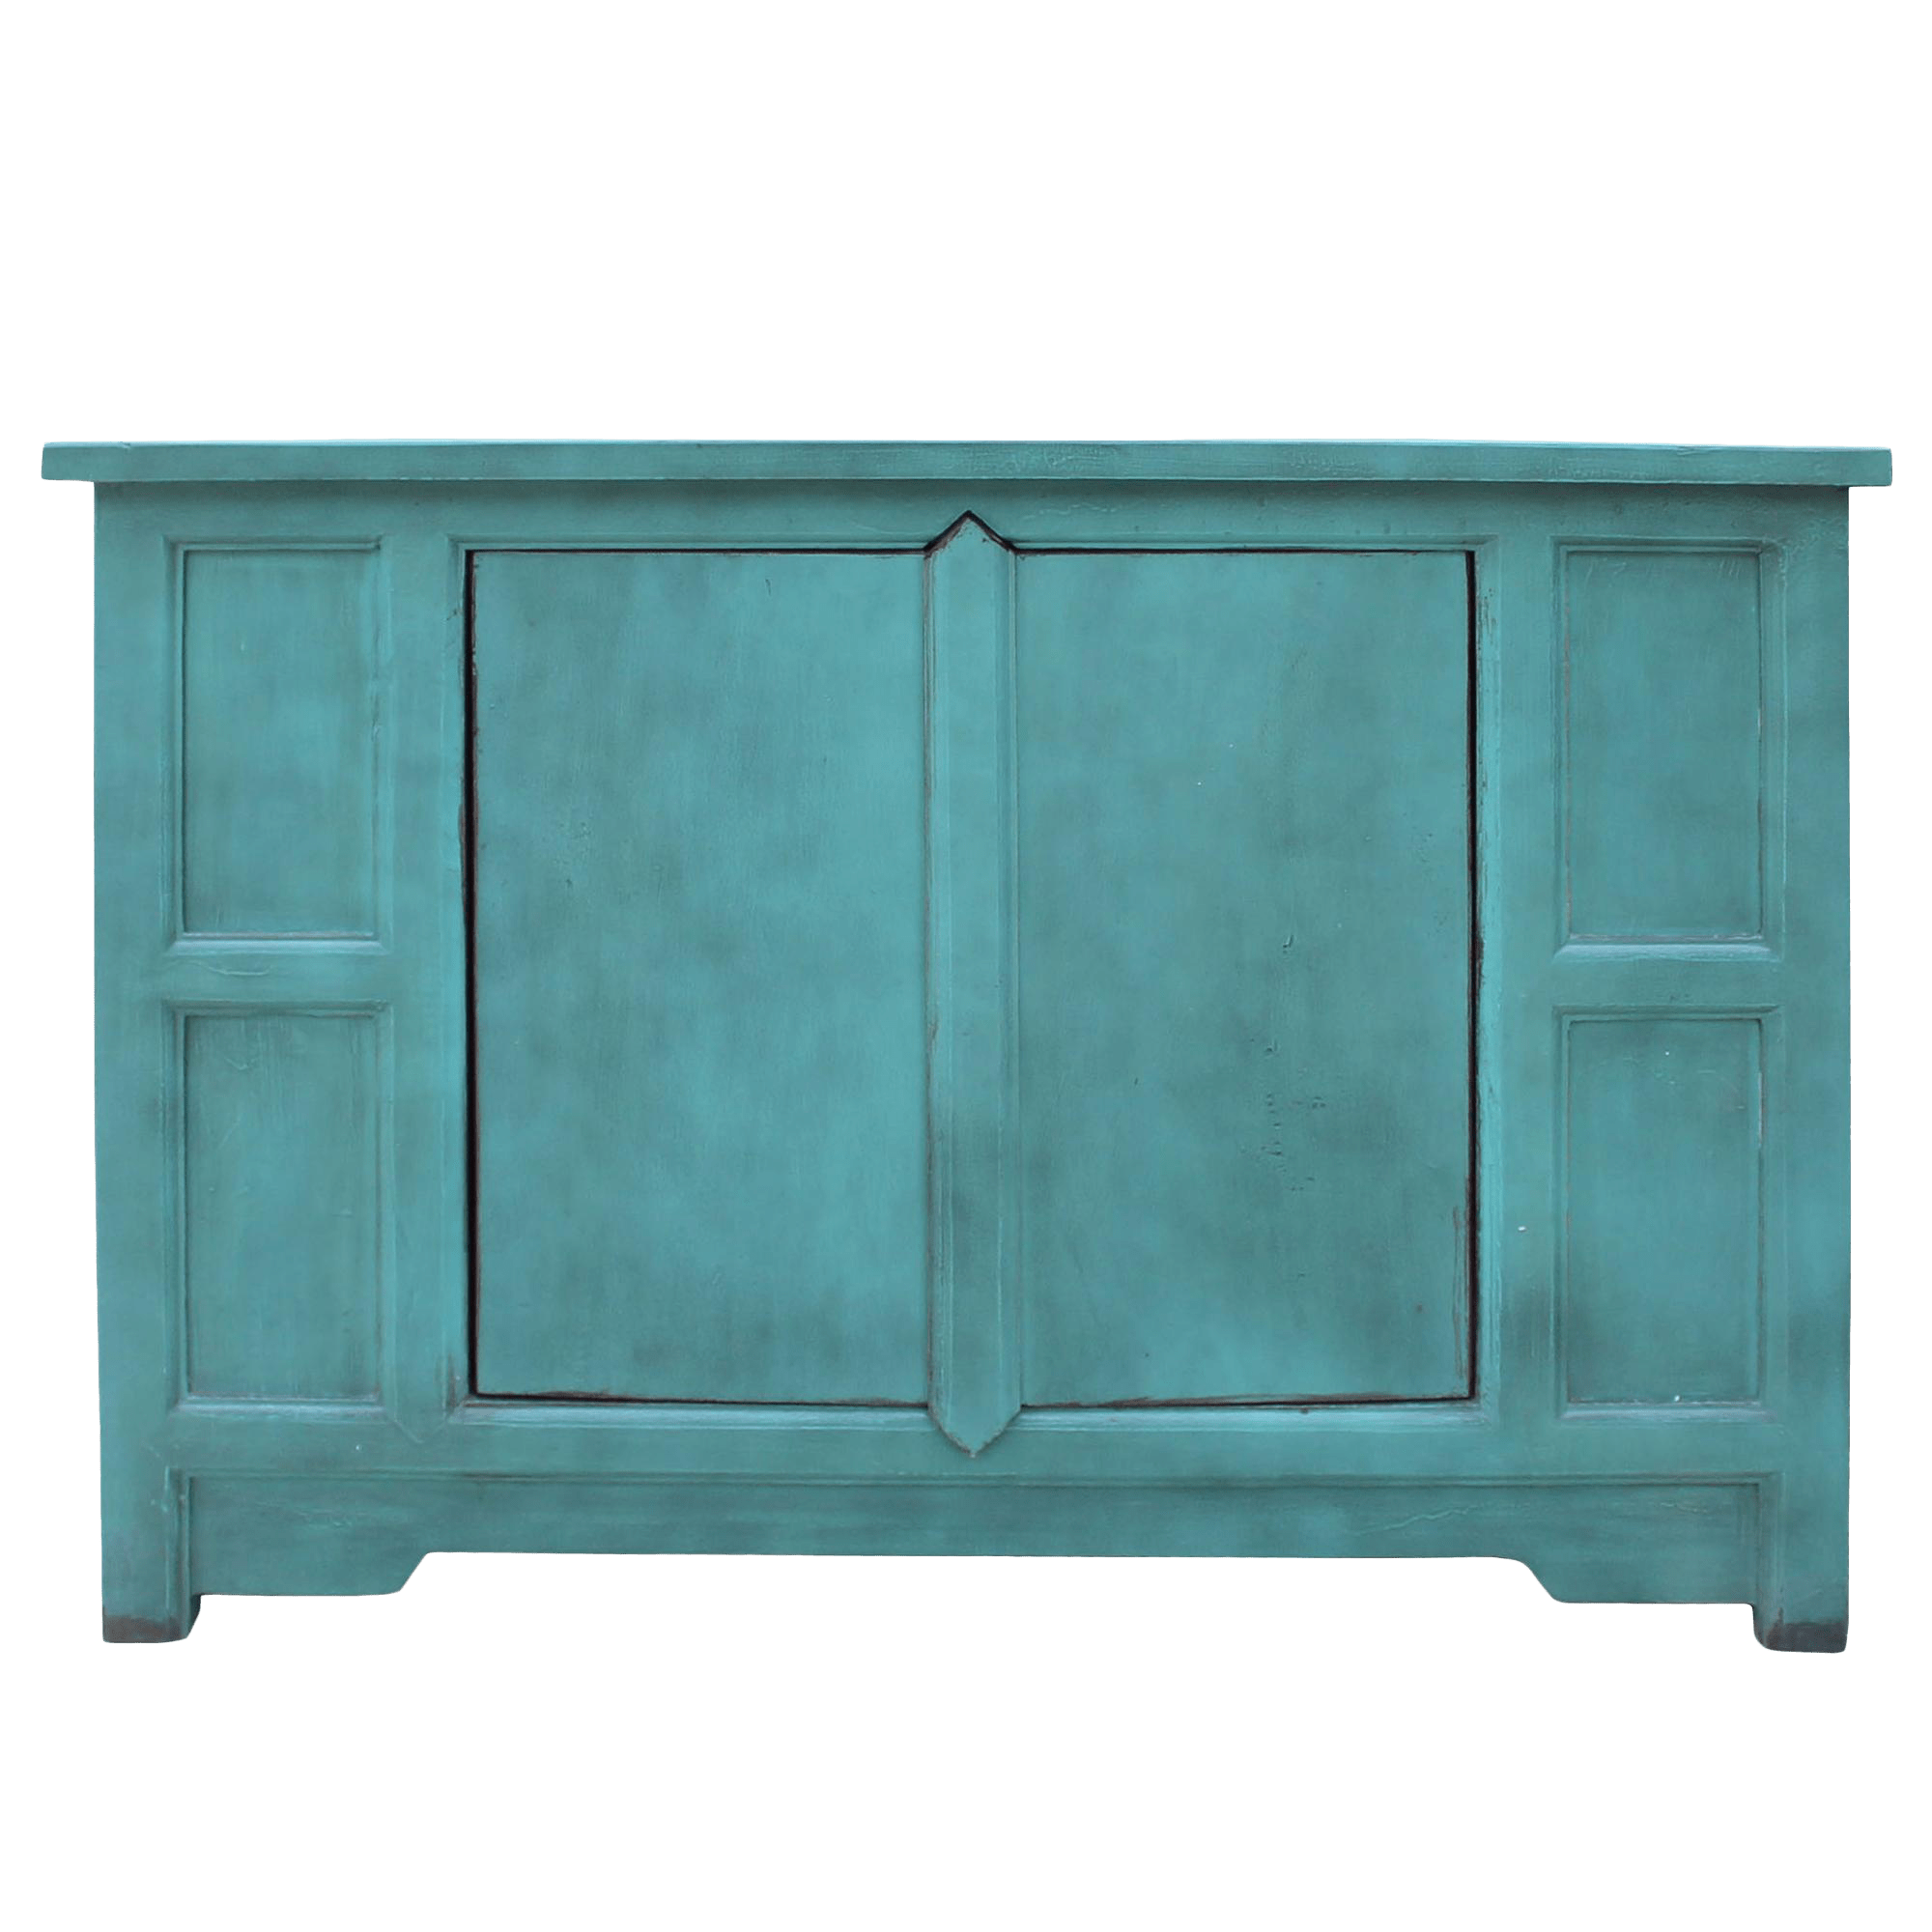 Sideboard Shabby Chic Simple Shabby Chic Rustic Light Blue Low Credenza Cabinet